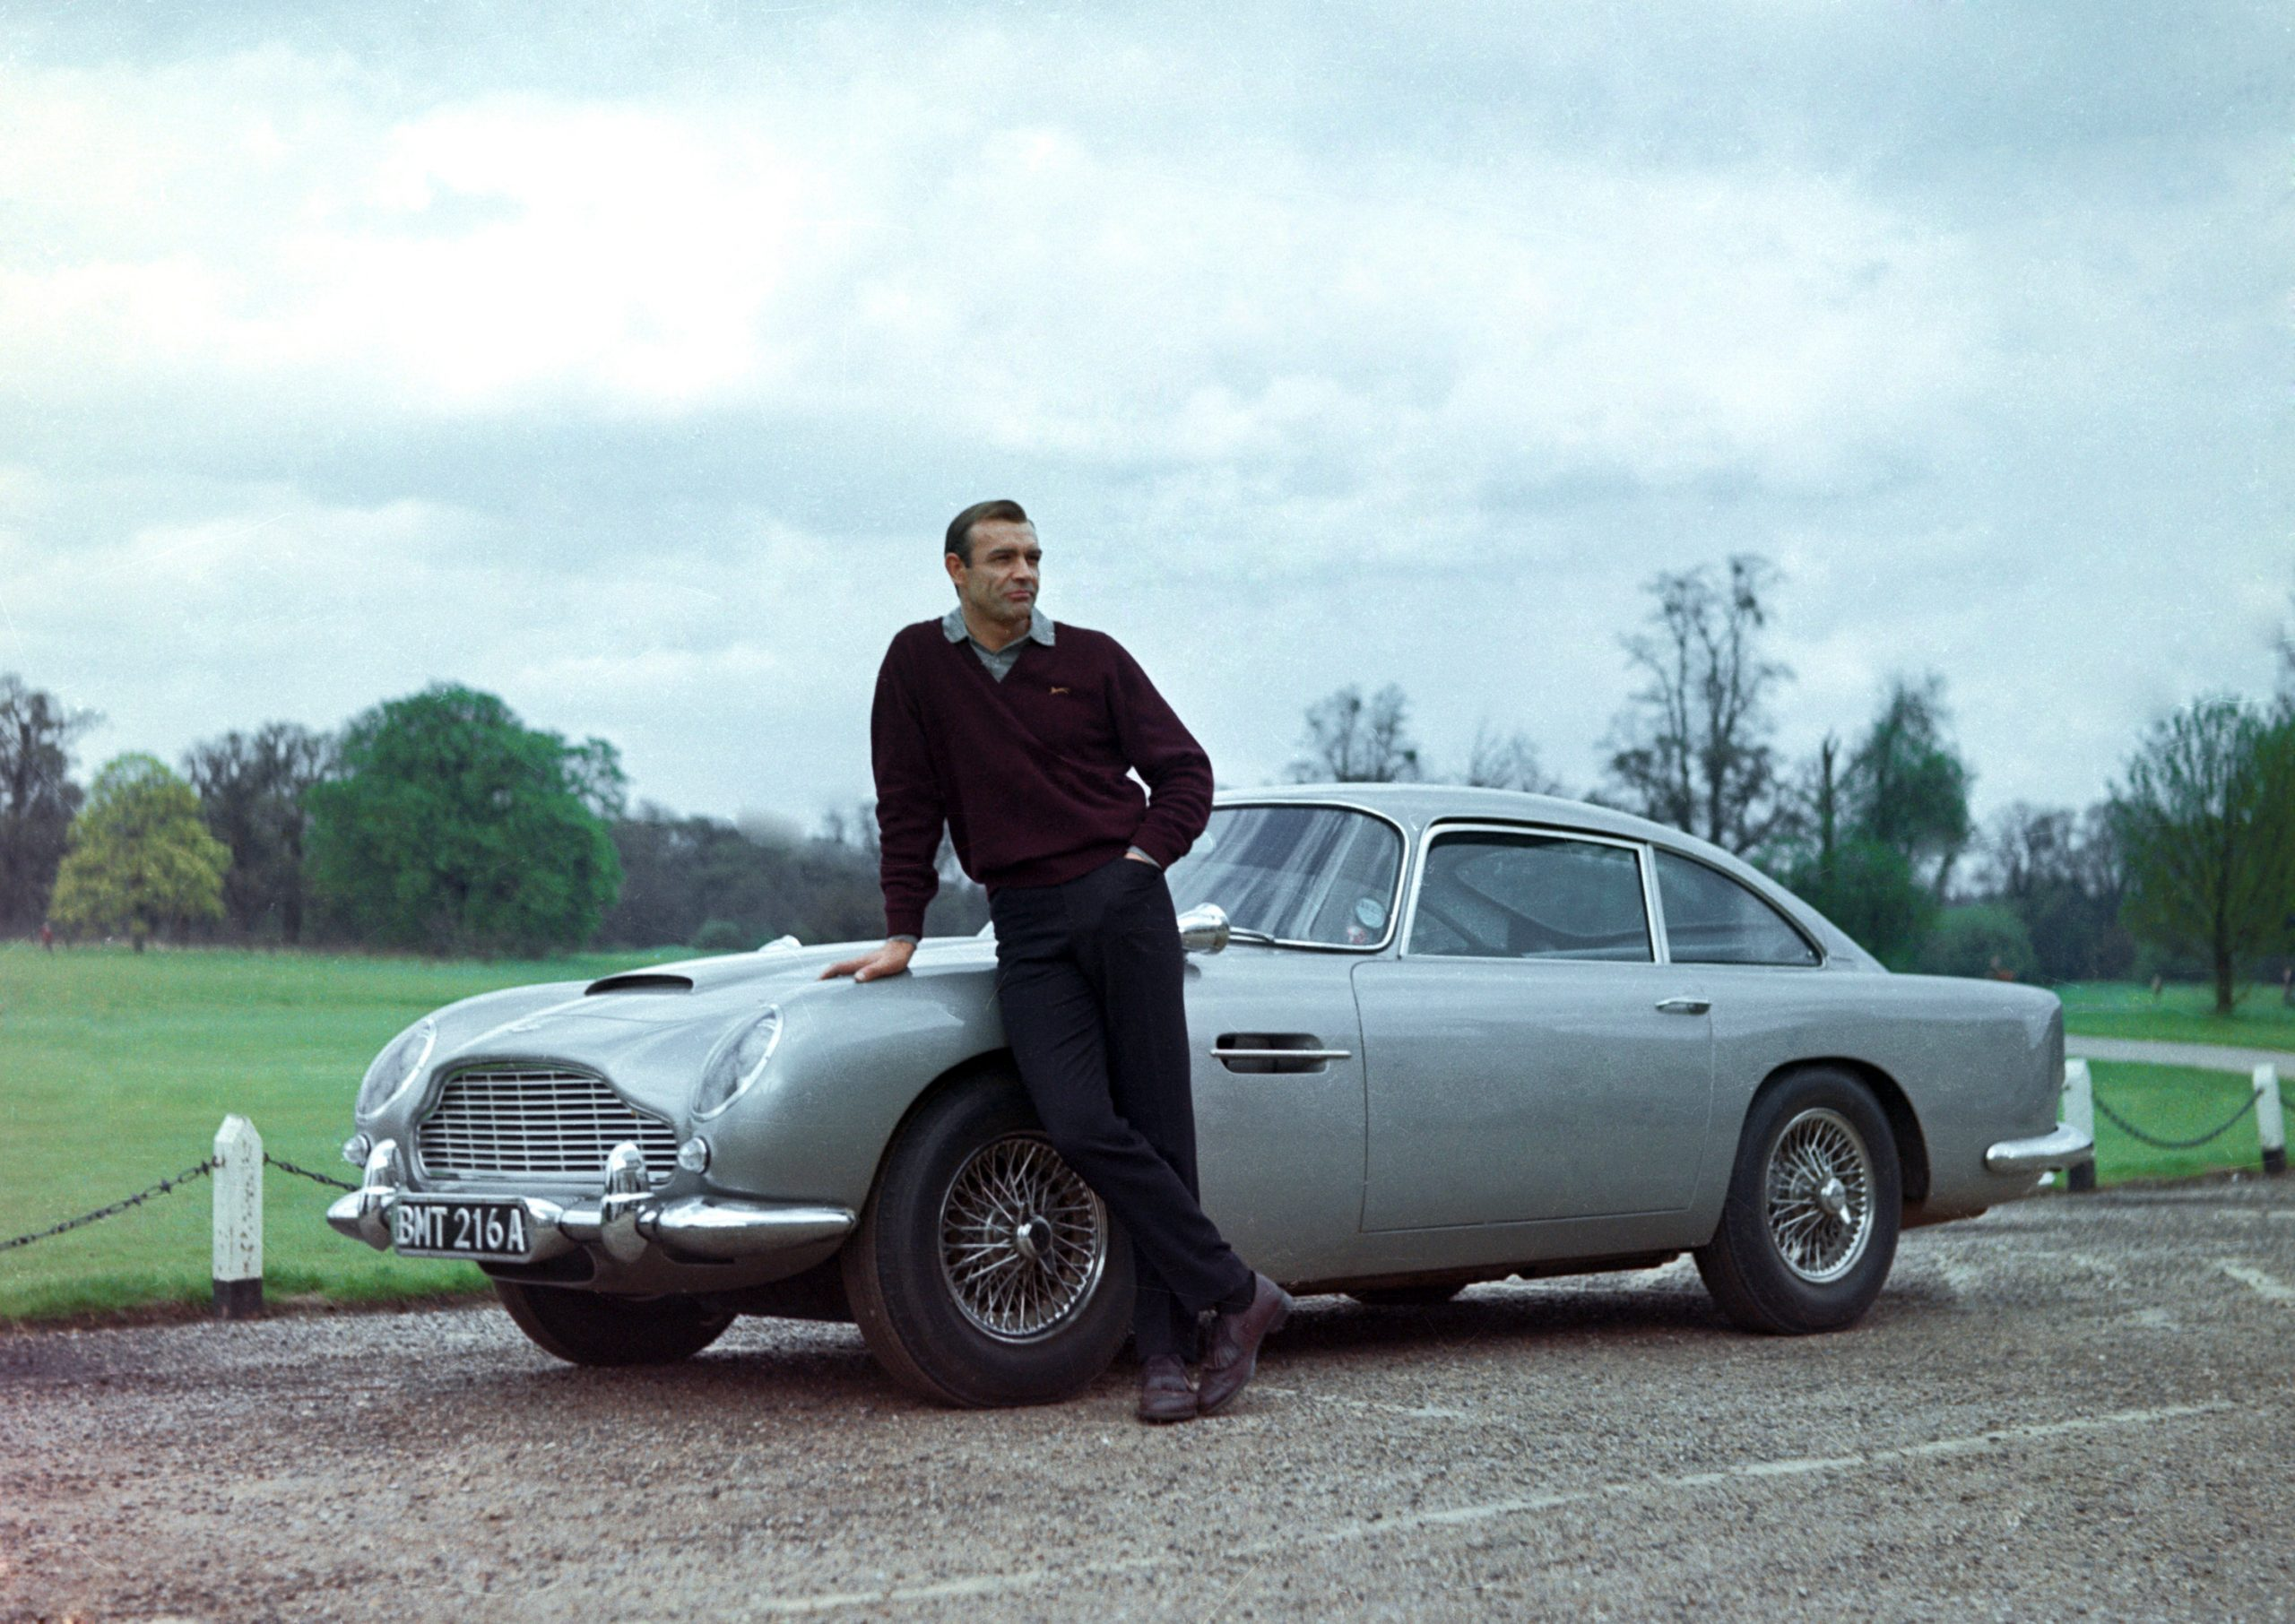 Sean Connery in Goldfinger, which introduced the Aston Martin DB5 as a popular Bond car